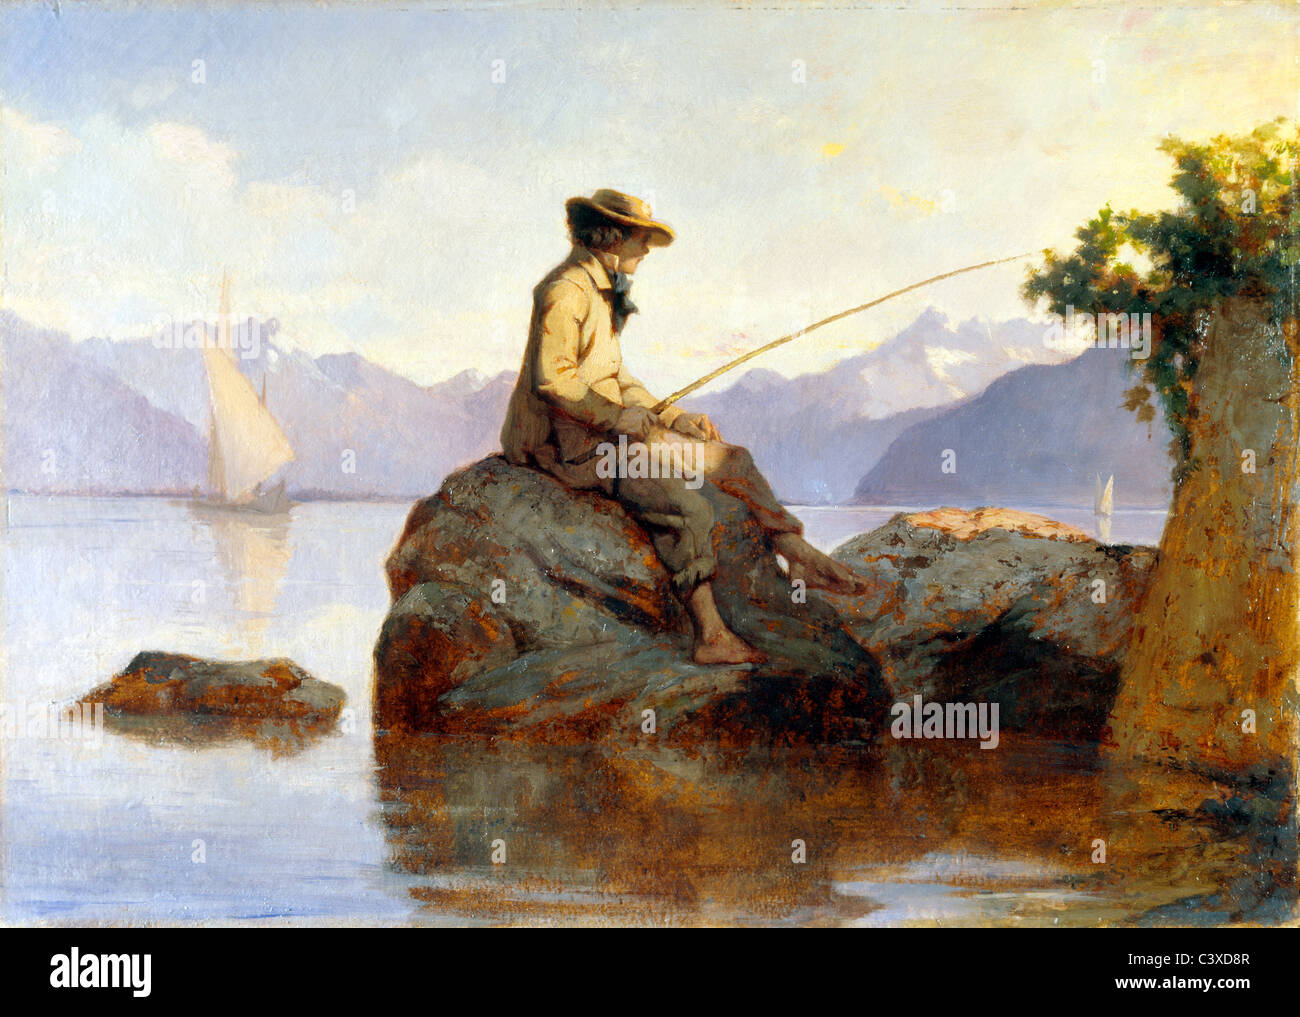 Oil painting of a man fishing, by Franþois Louis David Bocion. Switzerland, 19th century - Stock Image